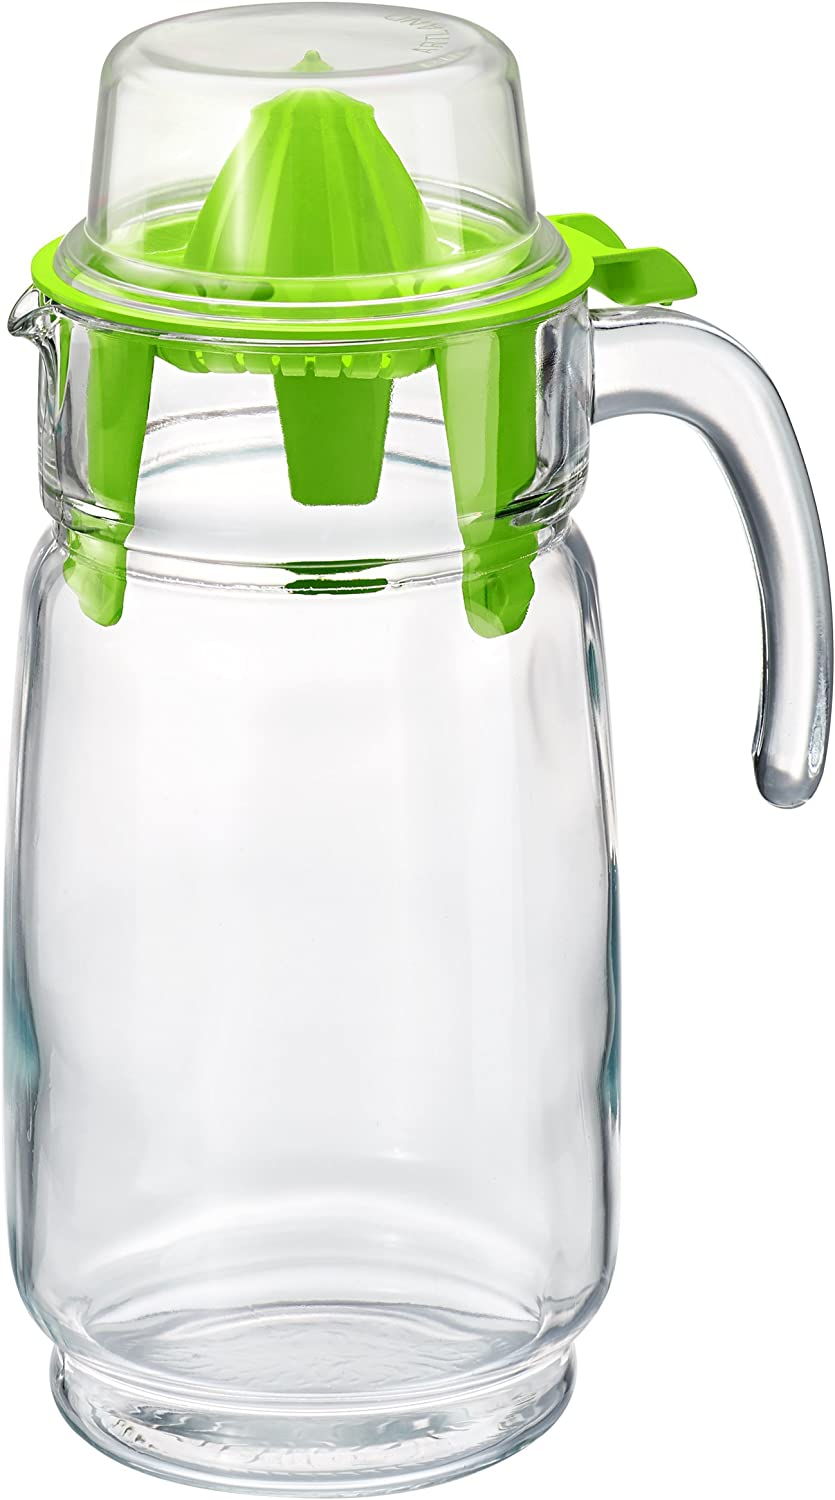 Artland 56517A Juice Bar Pitcher, Medium/50 oz, Green